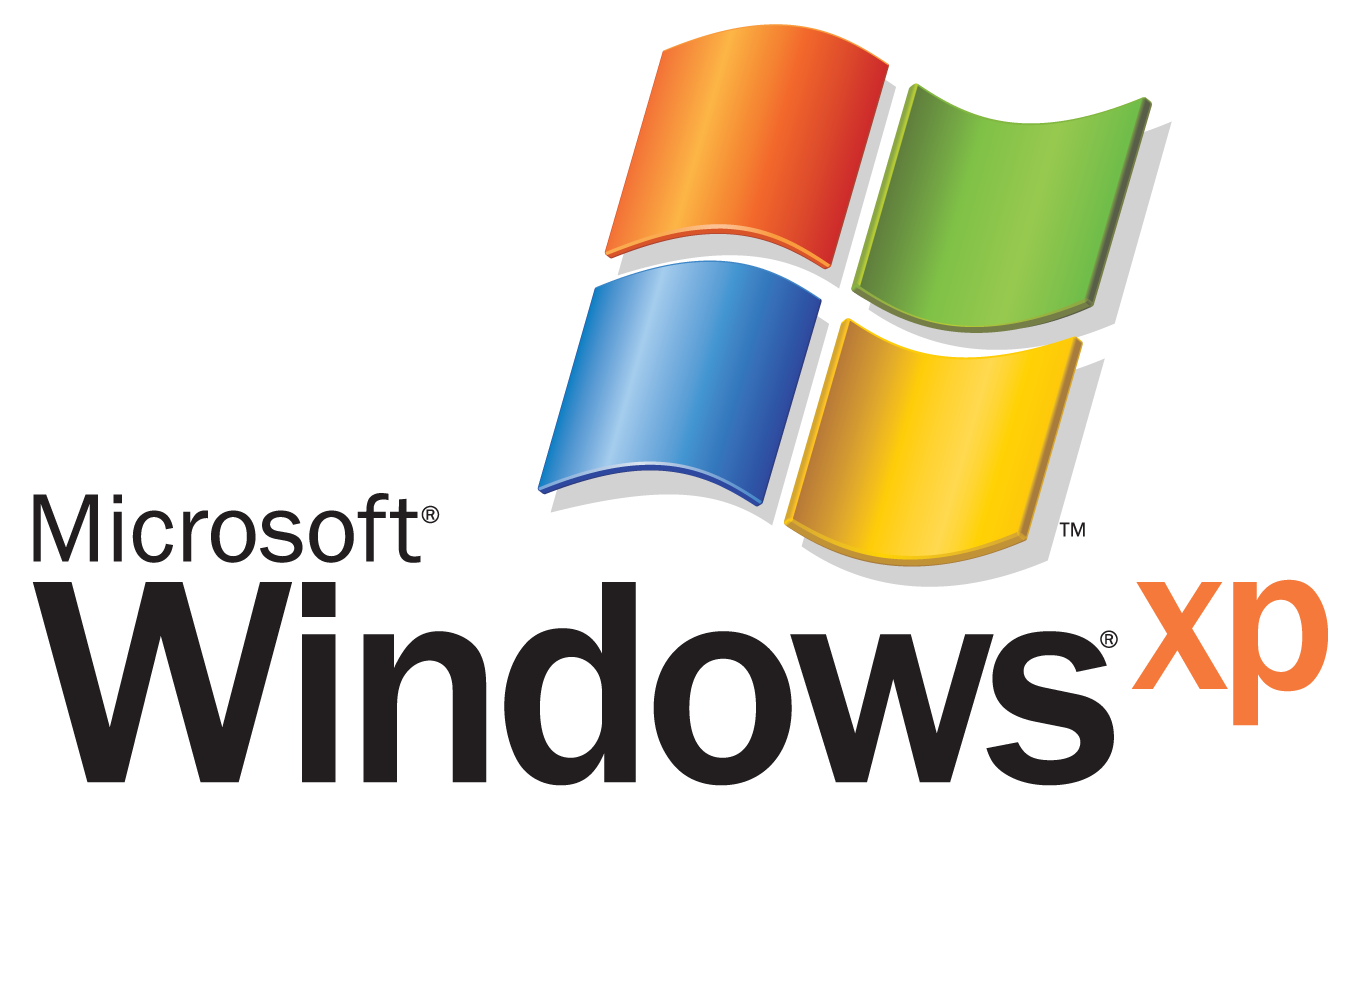 Win clipart home windows. Upgrading from xp to